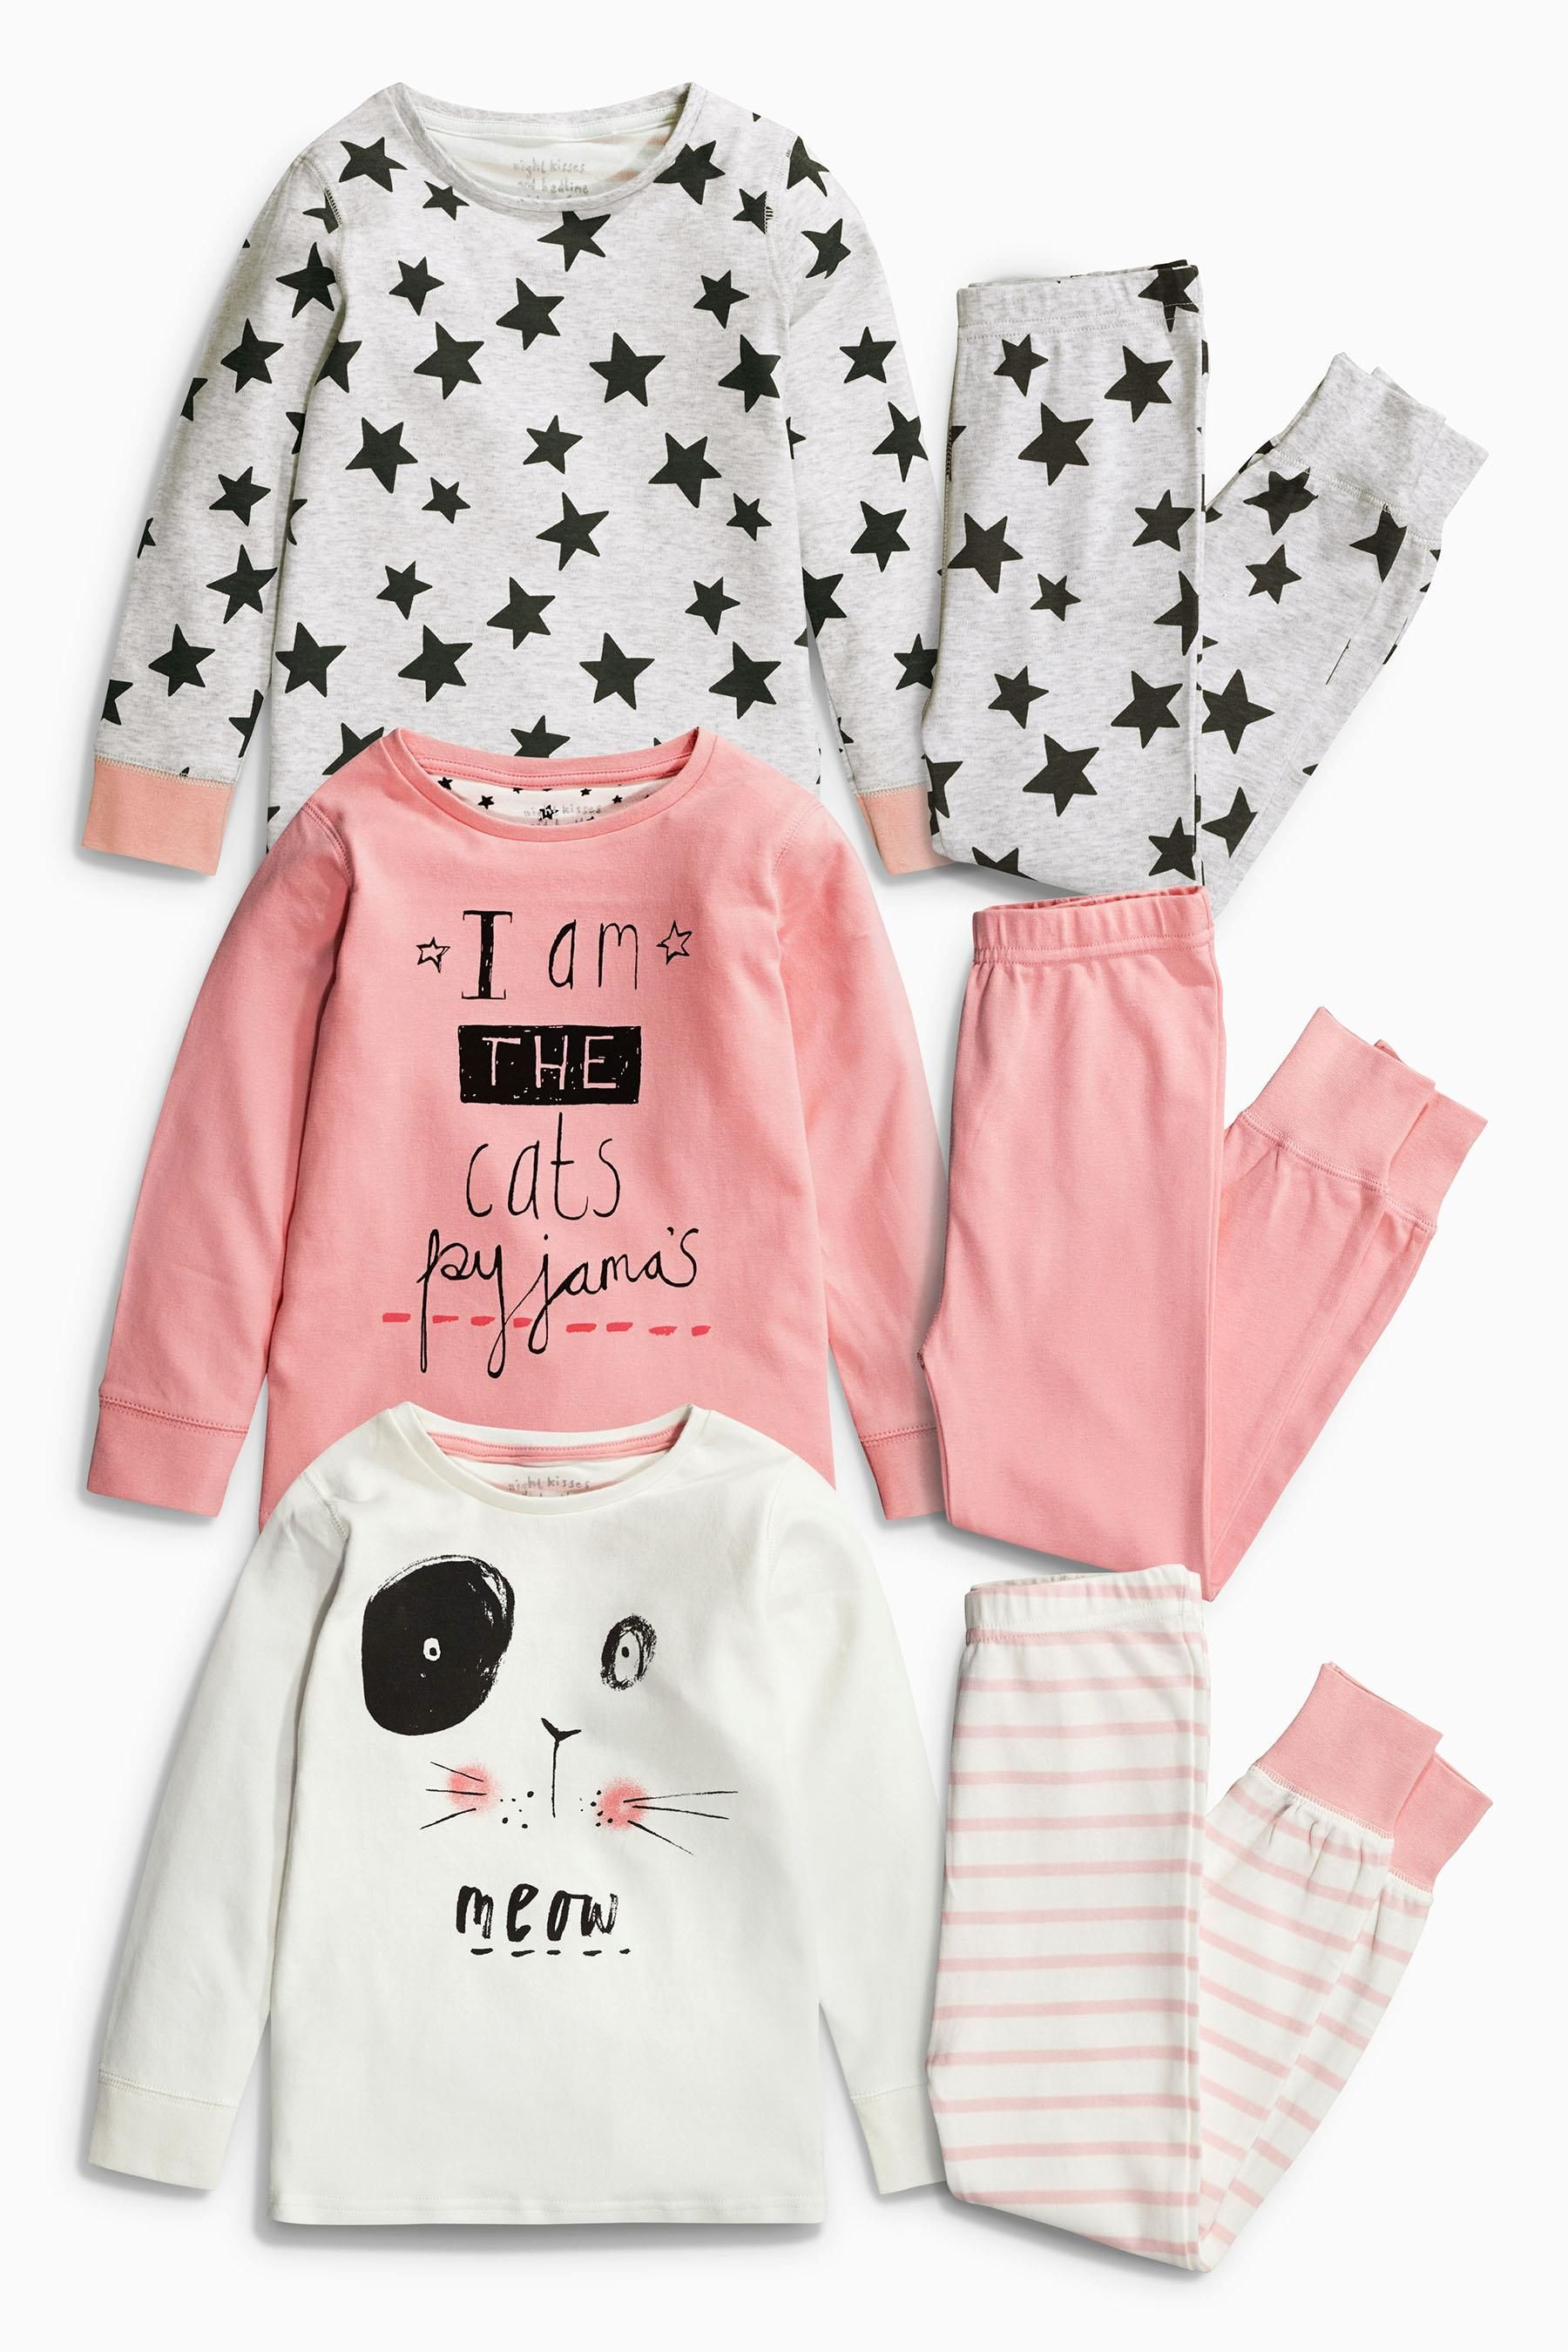 bd1557e1de Second Hand Kids Clothes. Buy Three Pack Cat Snuggle Pyjamas (12mths-8yrs)  from the Next UK online shop